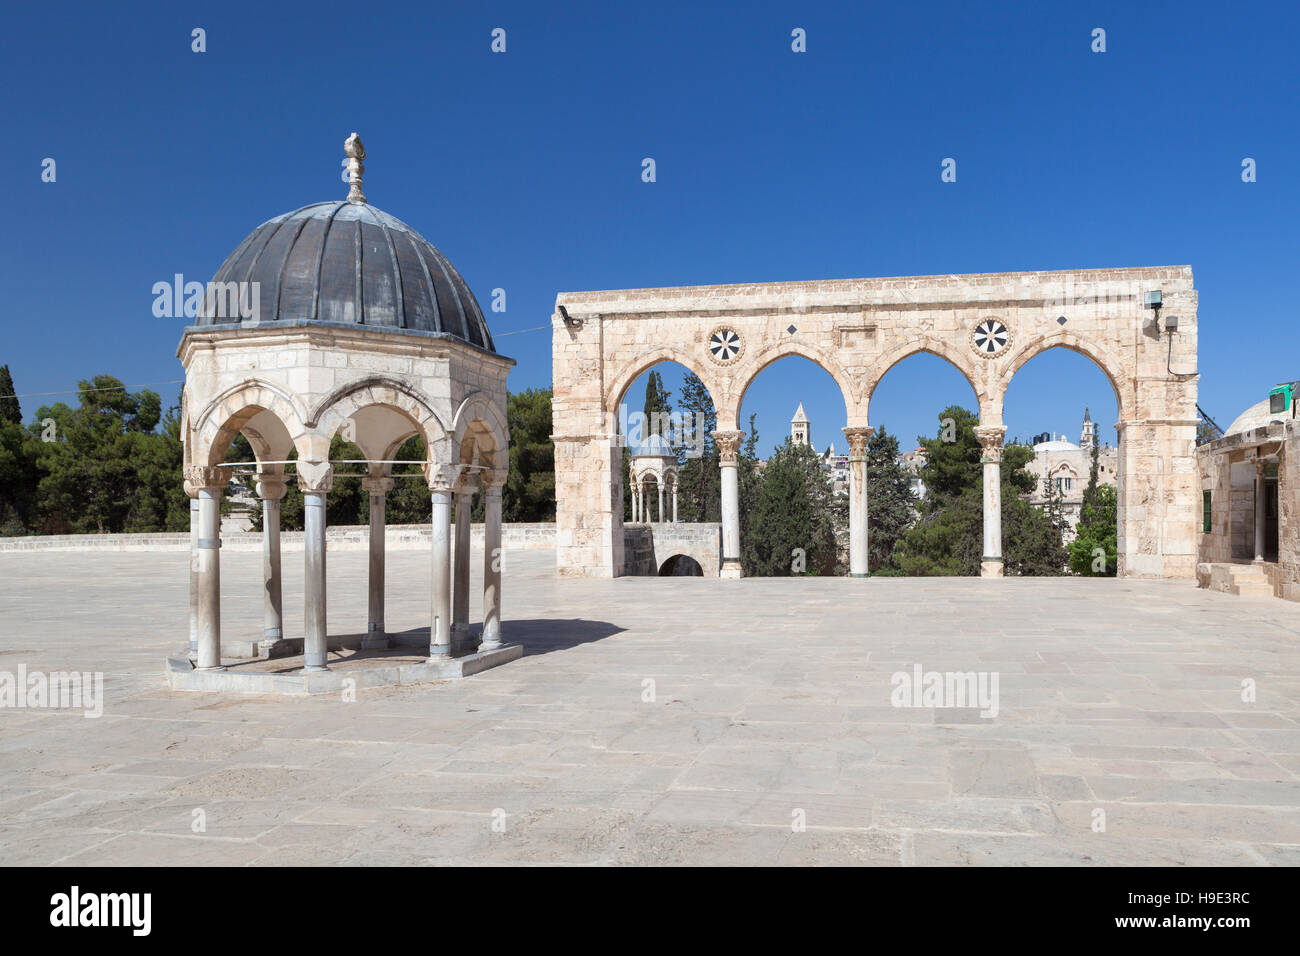 The arches at the top of the stairs of scales of souls, temple mount, Jerusalem, Palestine - Stock Image